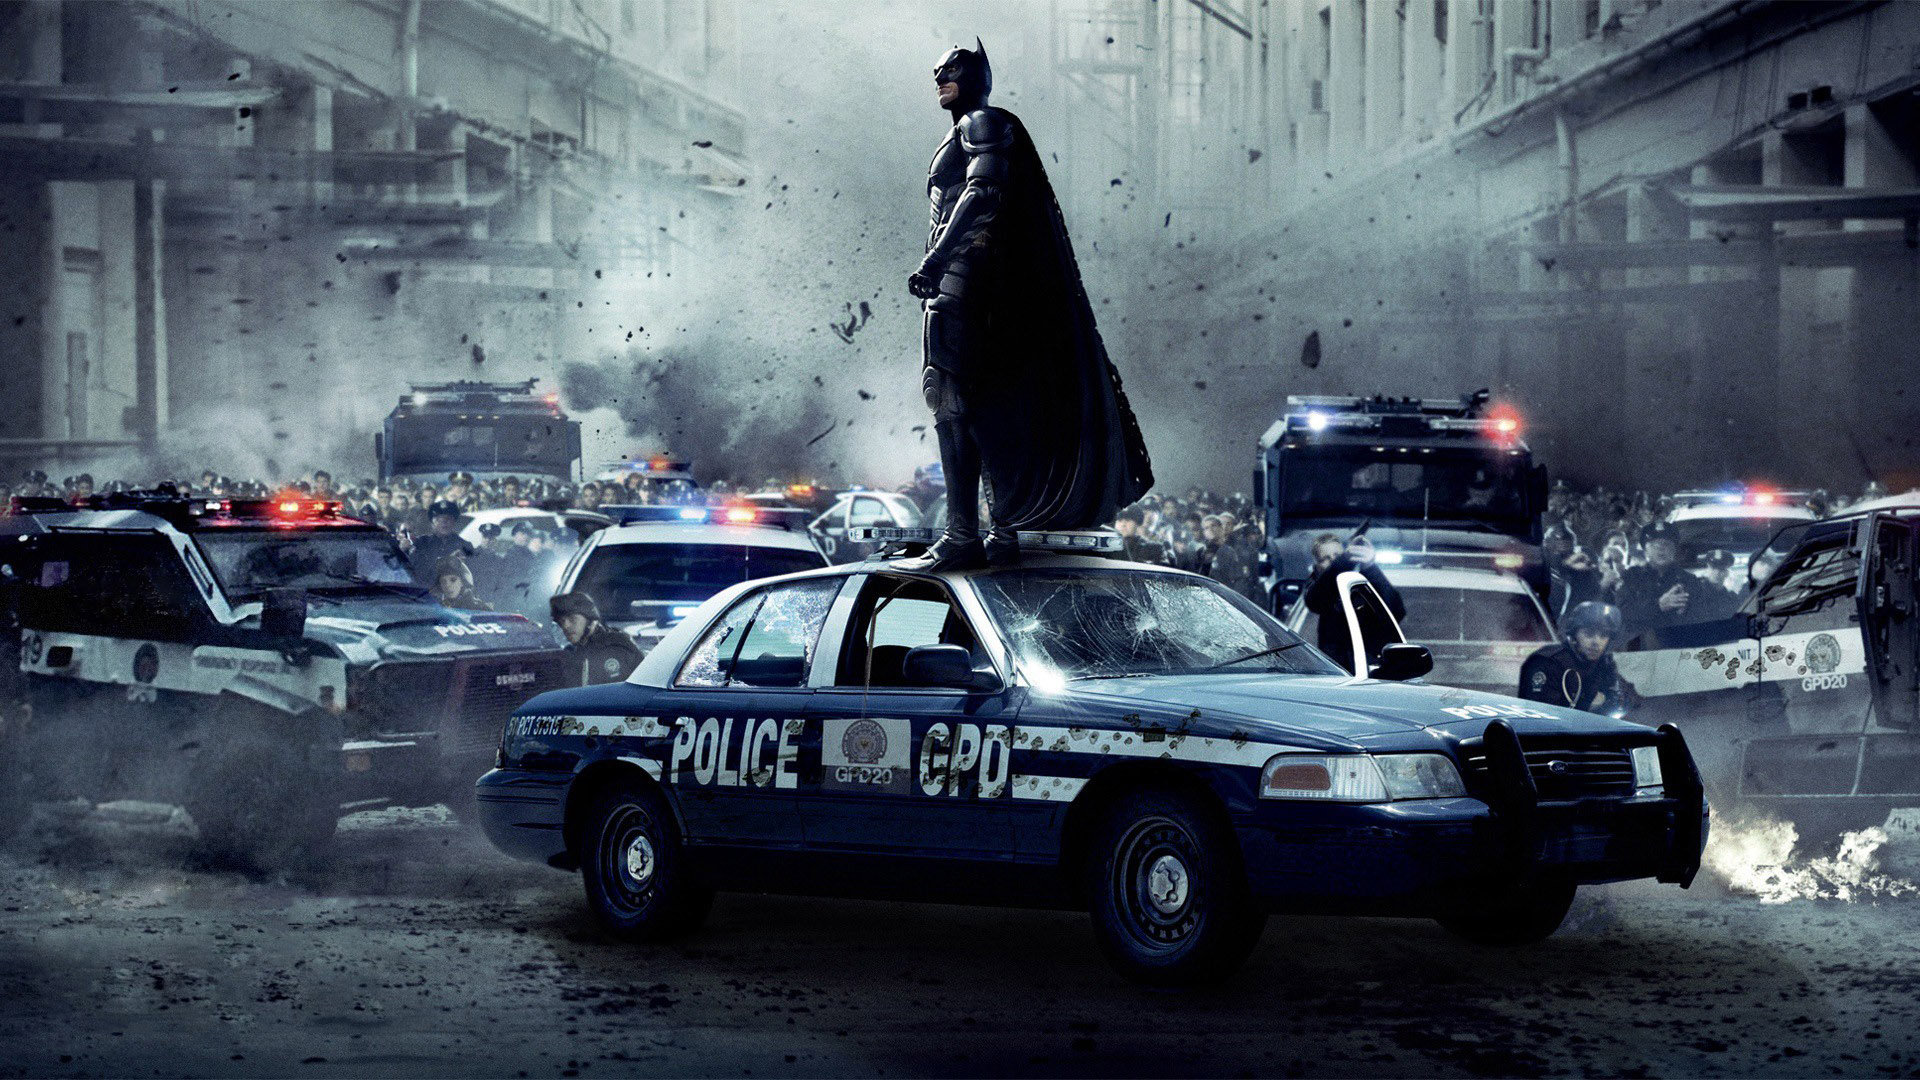 Law Enforcement Wallpaper Backgrounds Police heroes background 1920x1080